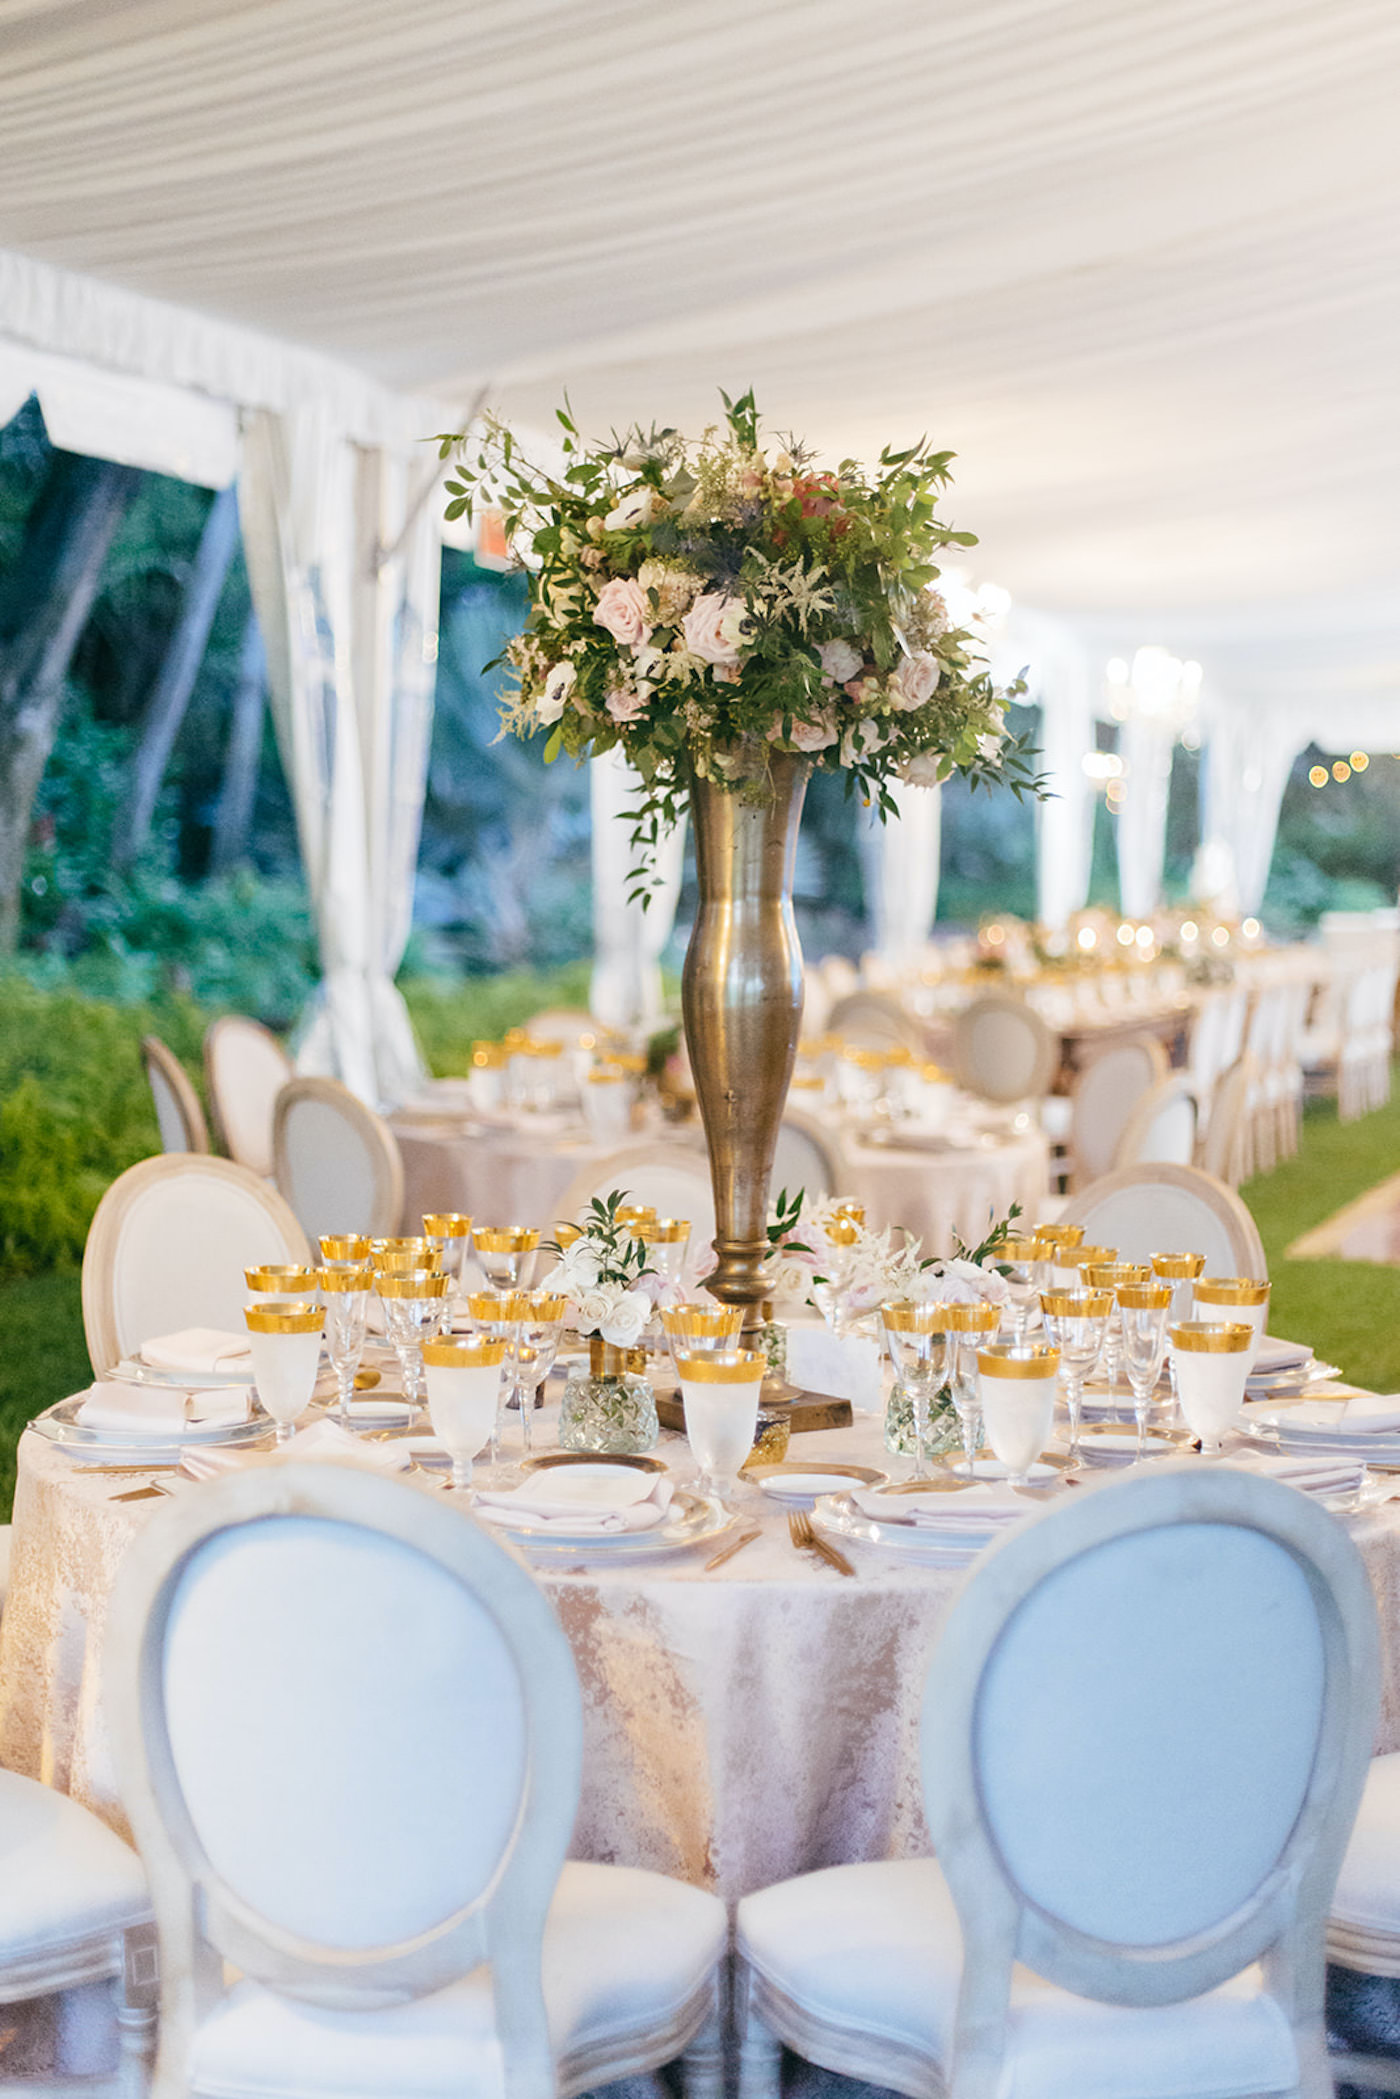 Elegant Florida Wedding Decor and Reception, Long Feasting Table for Wedding Party, Modern Circle Back Chairs, Crystal Chandeliers, Luxurious Blush Pink Florals and Greenery, Gold Table Setting Accents   Sarasota Wedding Planner NK Weddings   Marie Selby Botanical Gardens